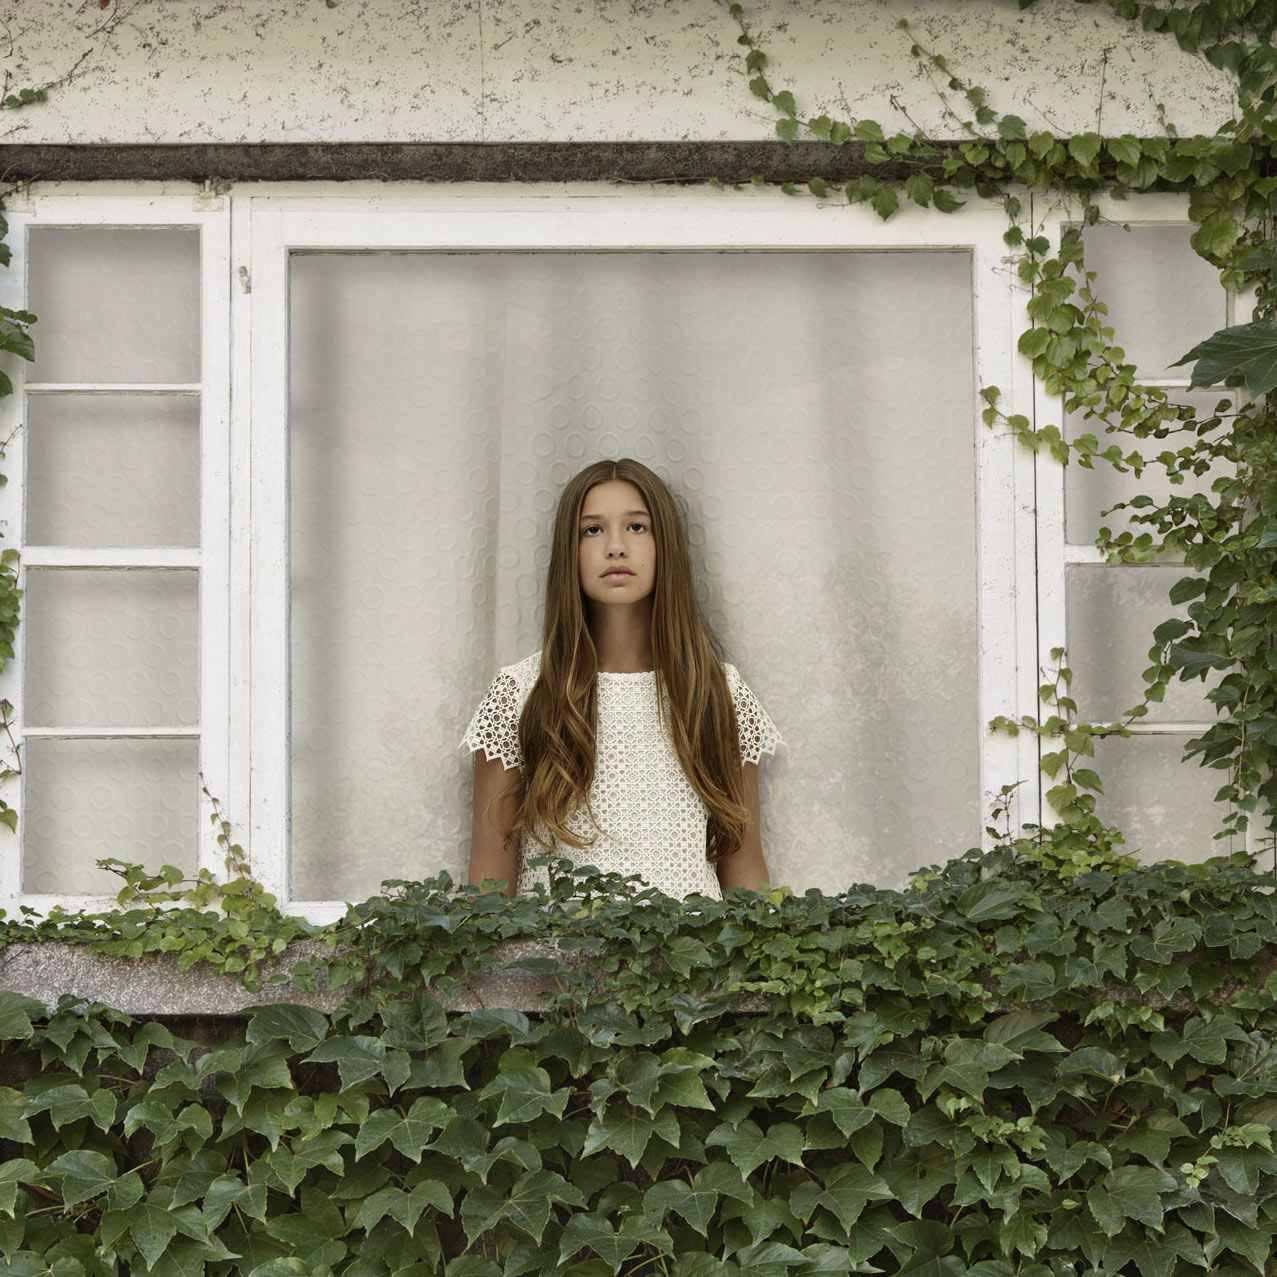 young brown haired girl dressed in white inside vine covered house looking sadly out the window by Simon Duhamel for In Between